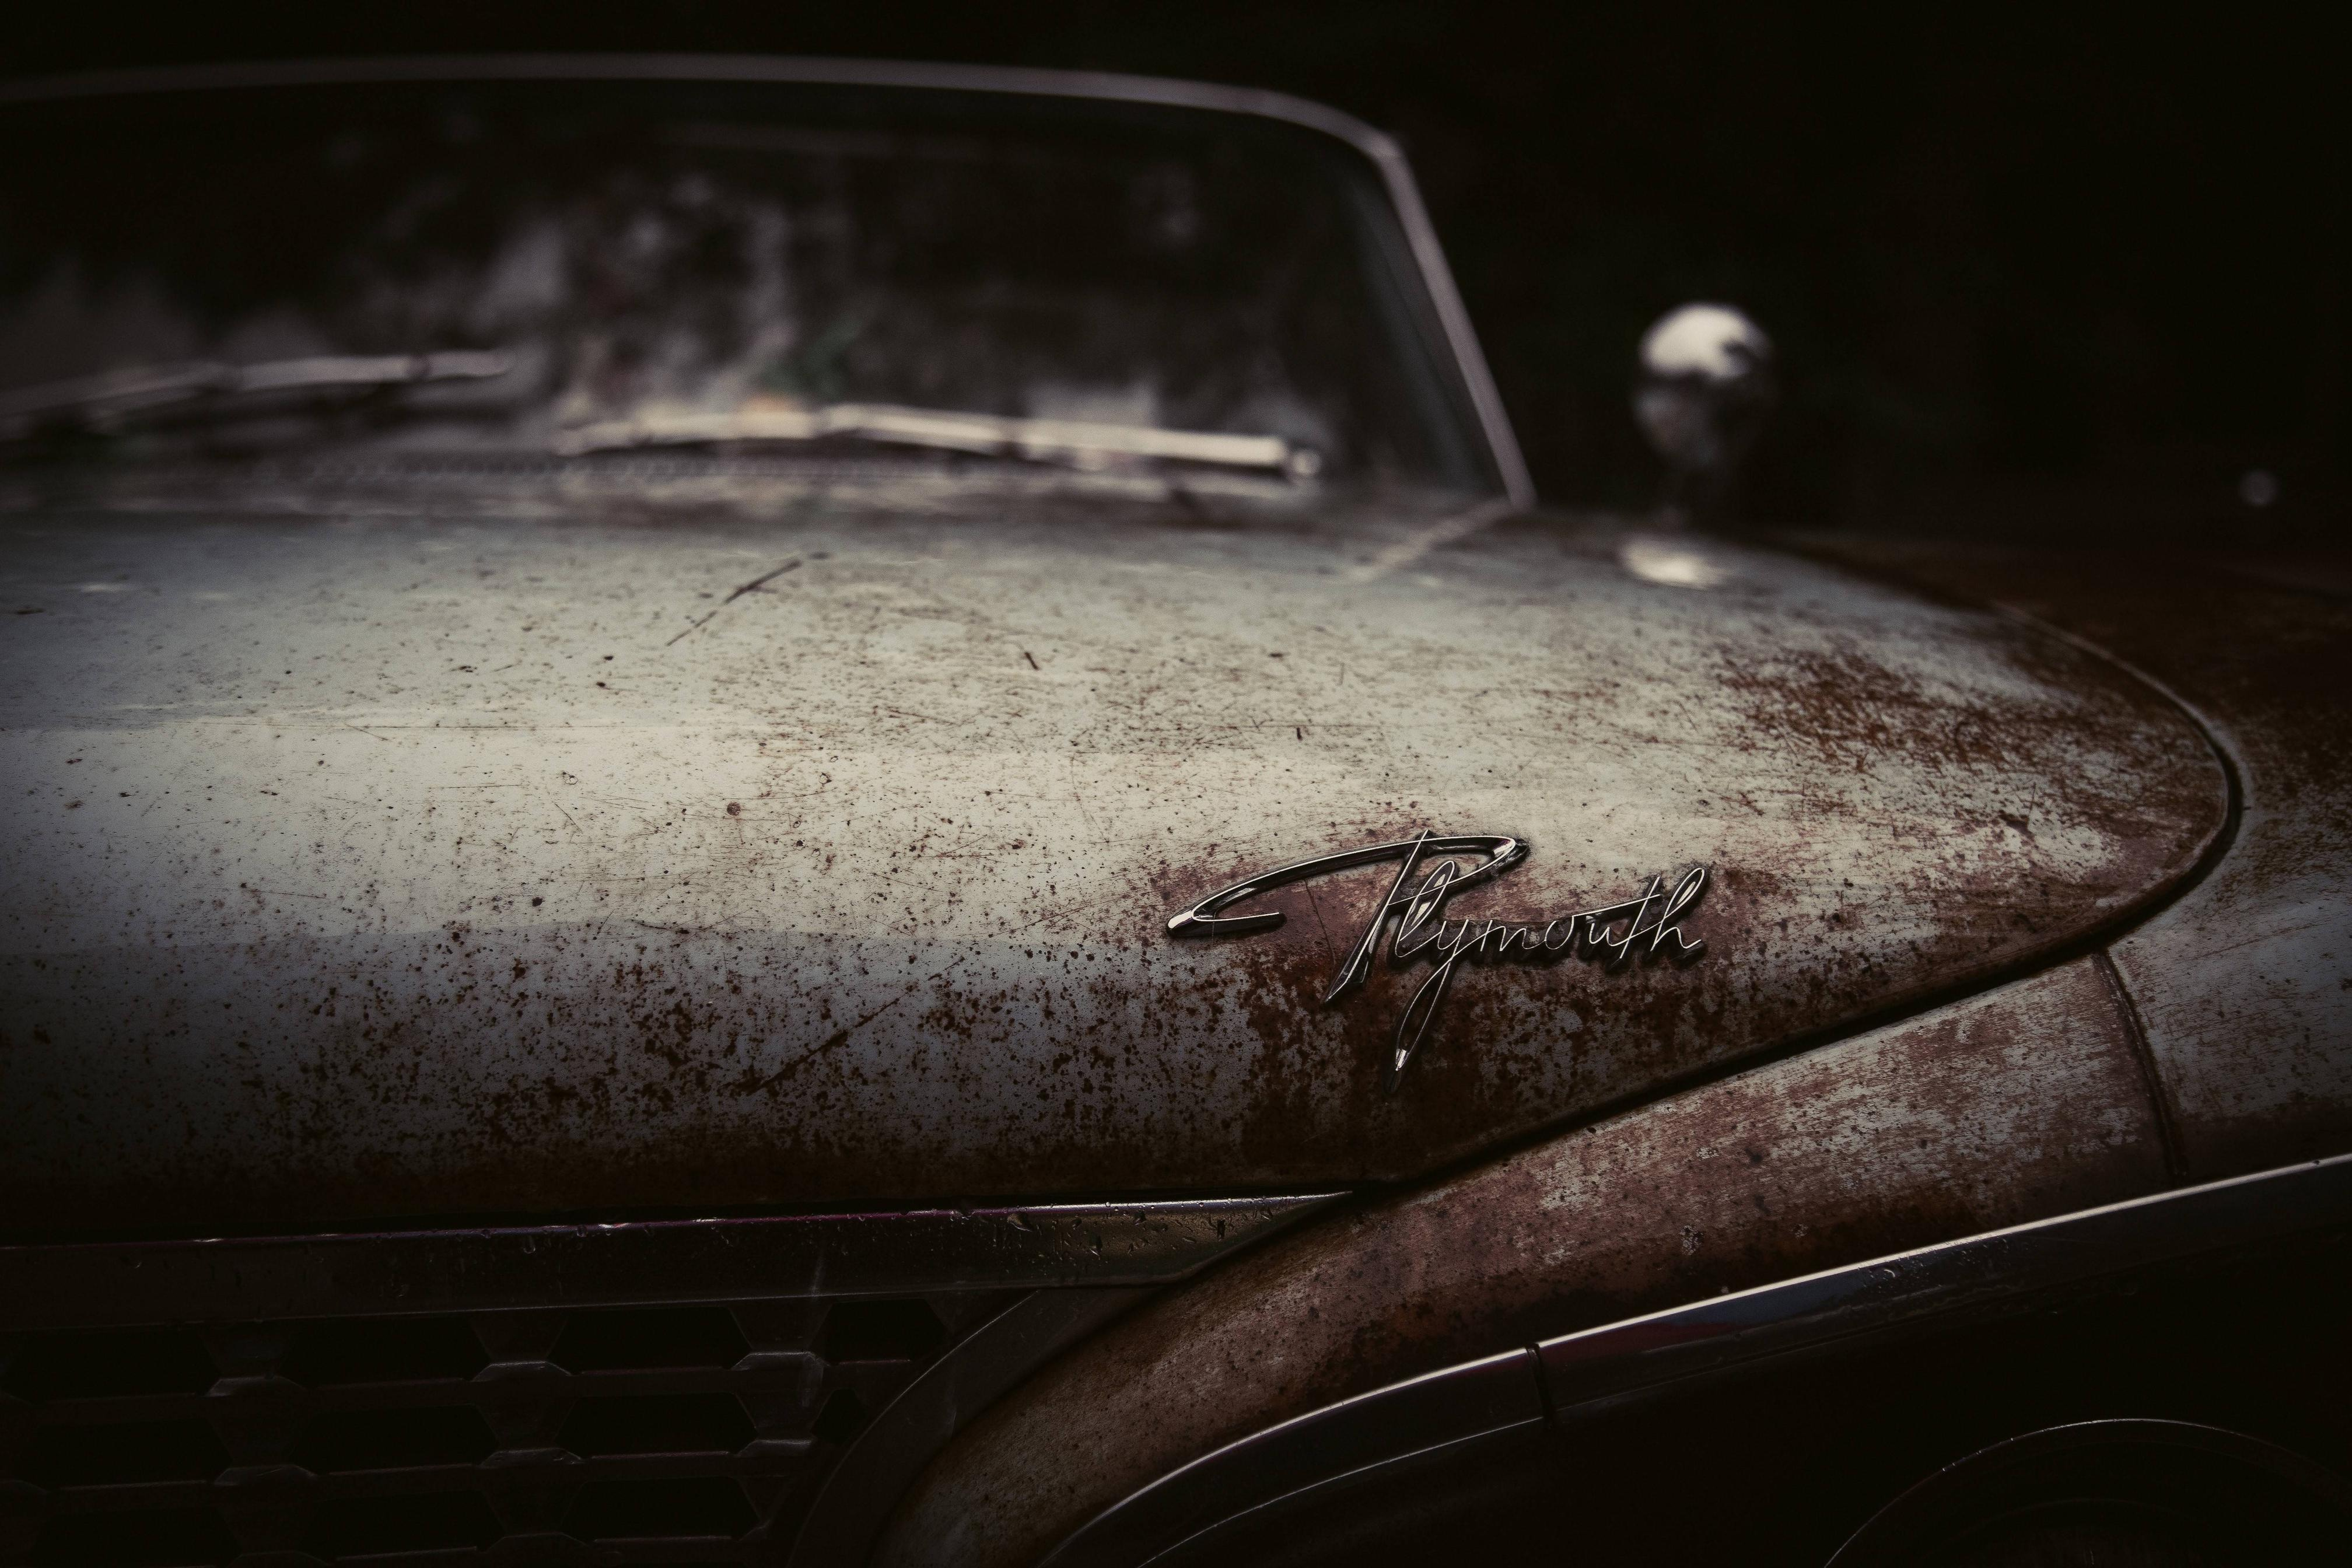 Vintage retro car hd cars 4k wallpapers images backgrounds photos and pictures - Best classic wallpaper ...